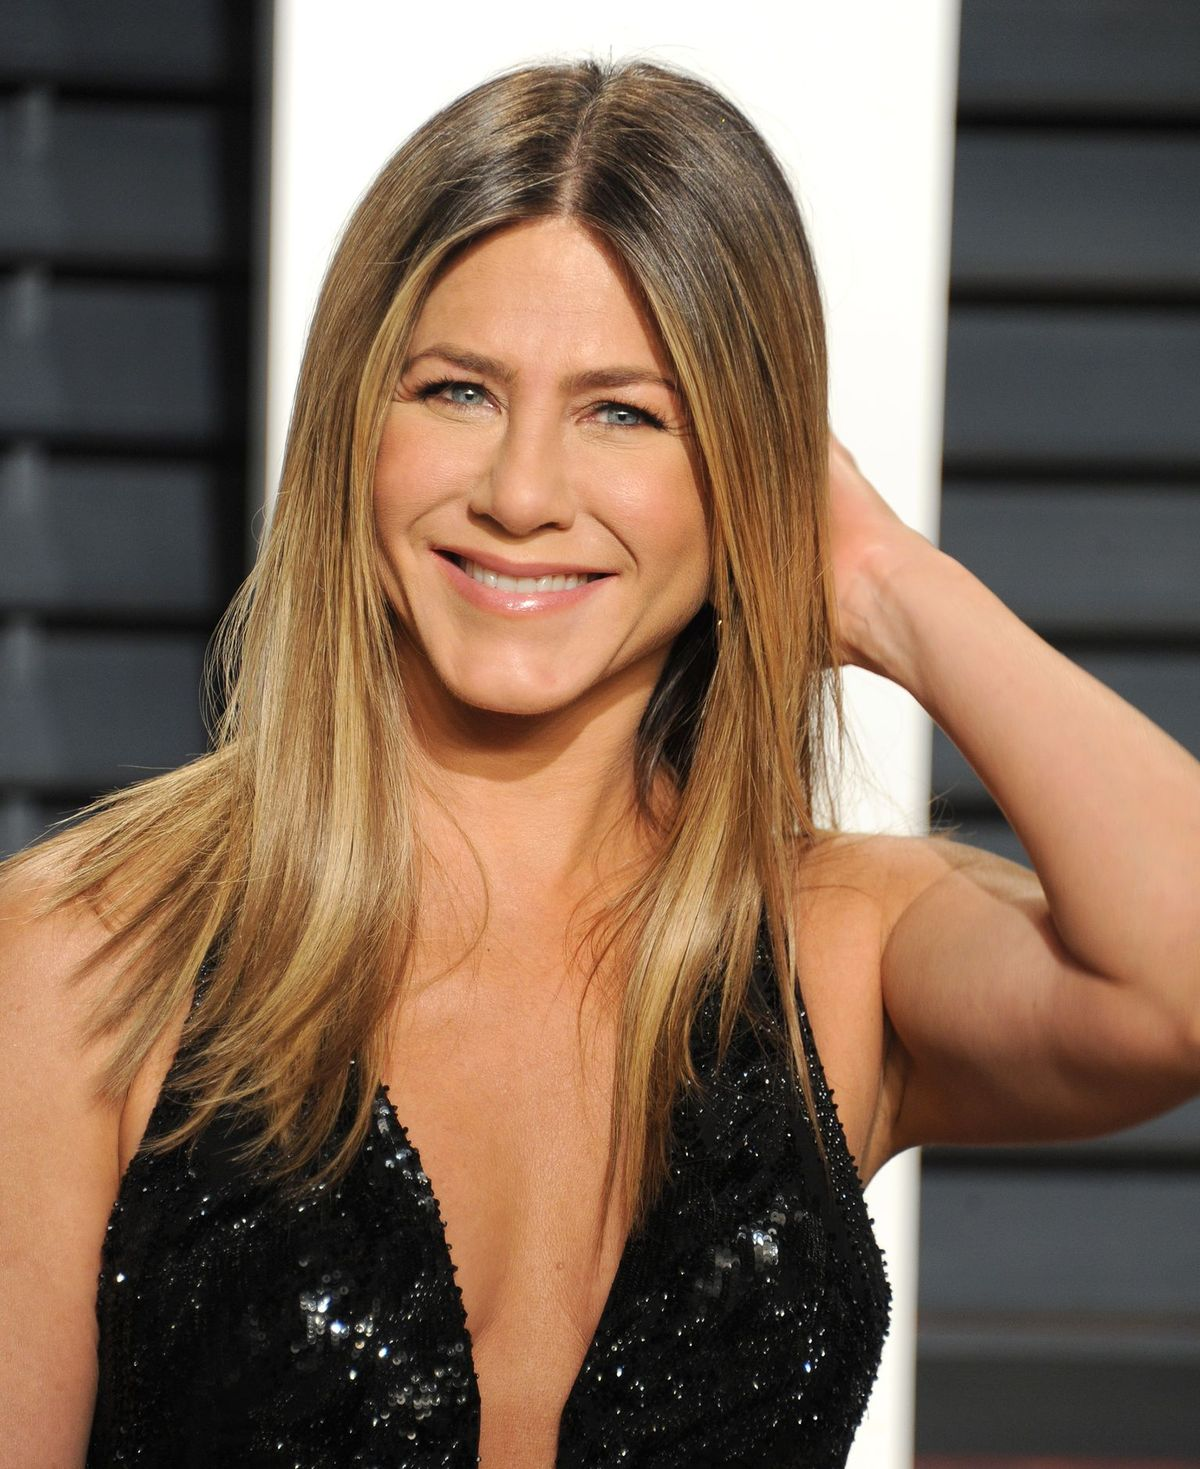 Jennifer Aniston at the Vanity Fair Oscar Party Hosted By Graydon Carter at Wallis Annenberg Center for the Performing Arts on February 26, 2017 | Photo: Getty Images